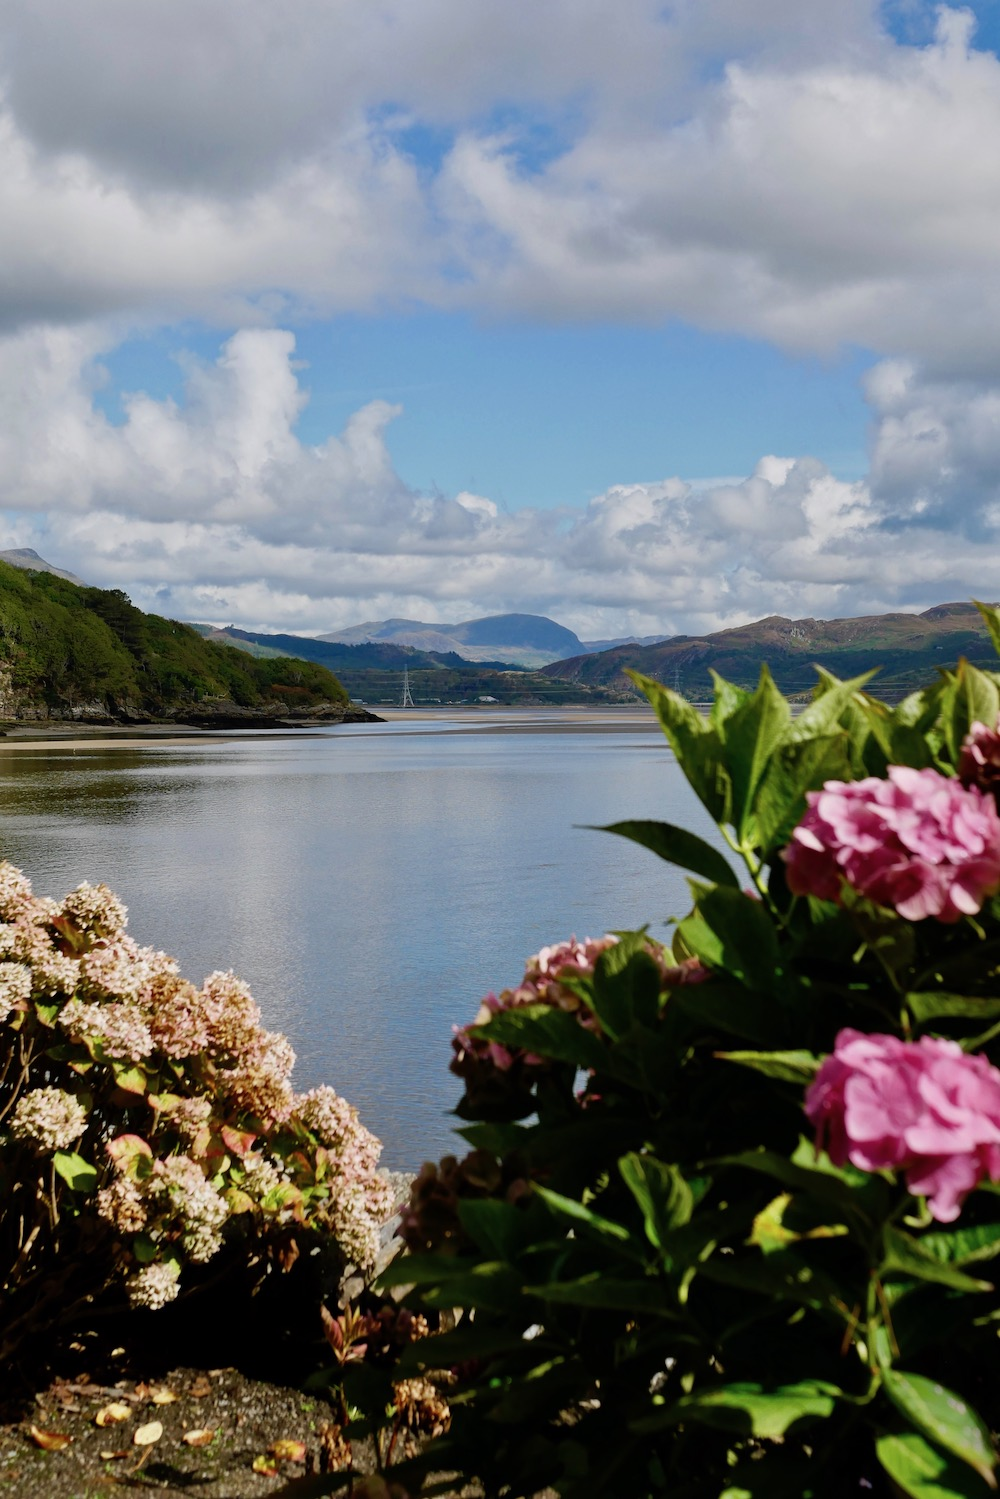 Views from Portmeirion